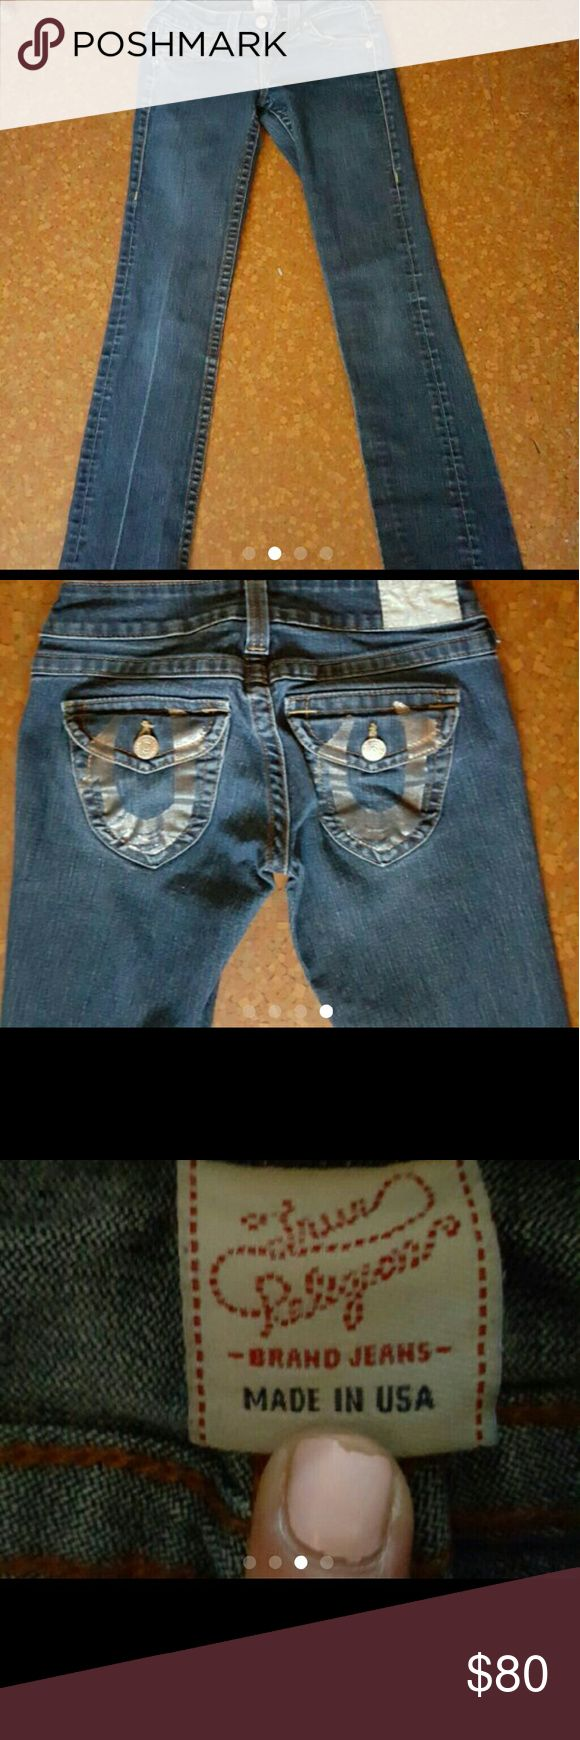 True Religion True Religion womens jeans great condition no rips no stains True Religion Jeans Straight Leg